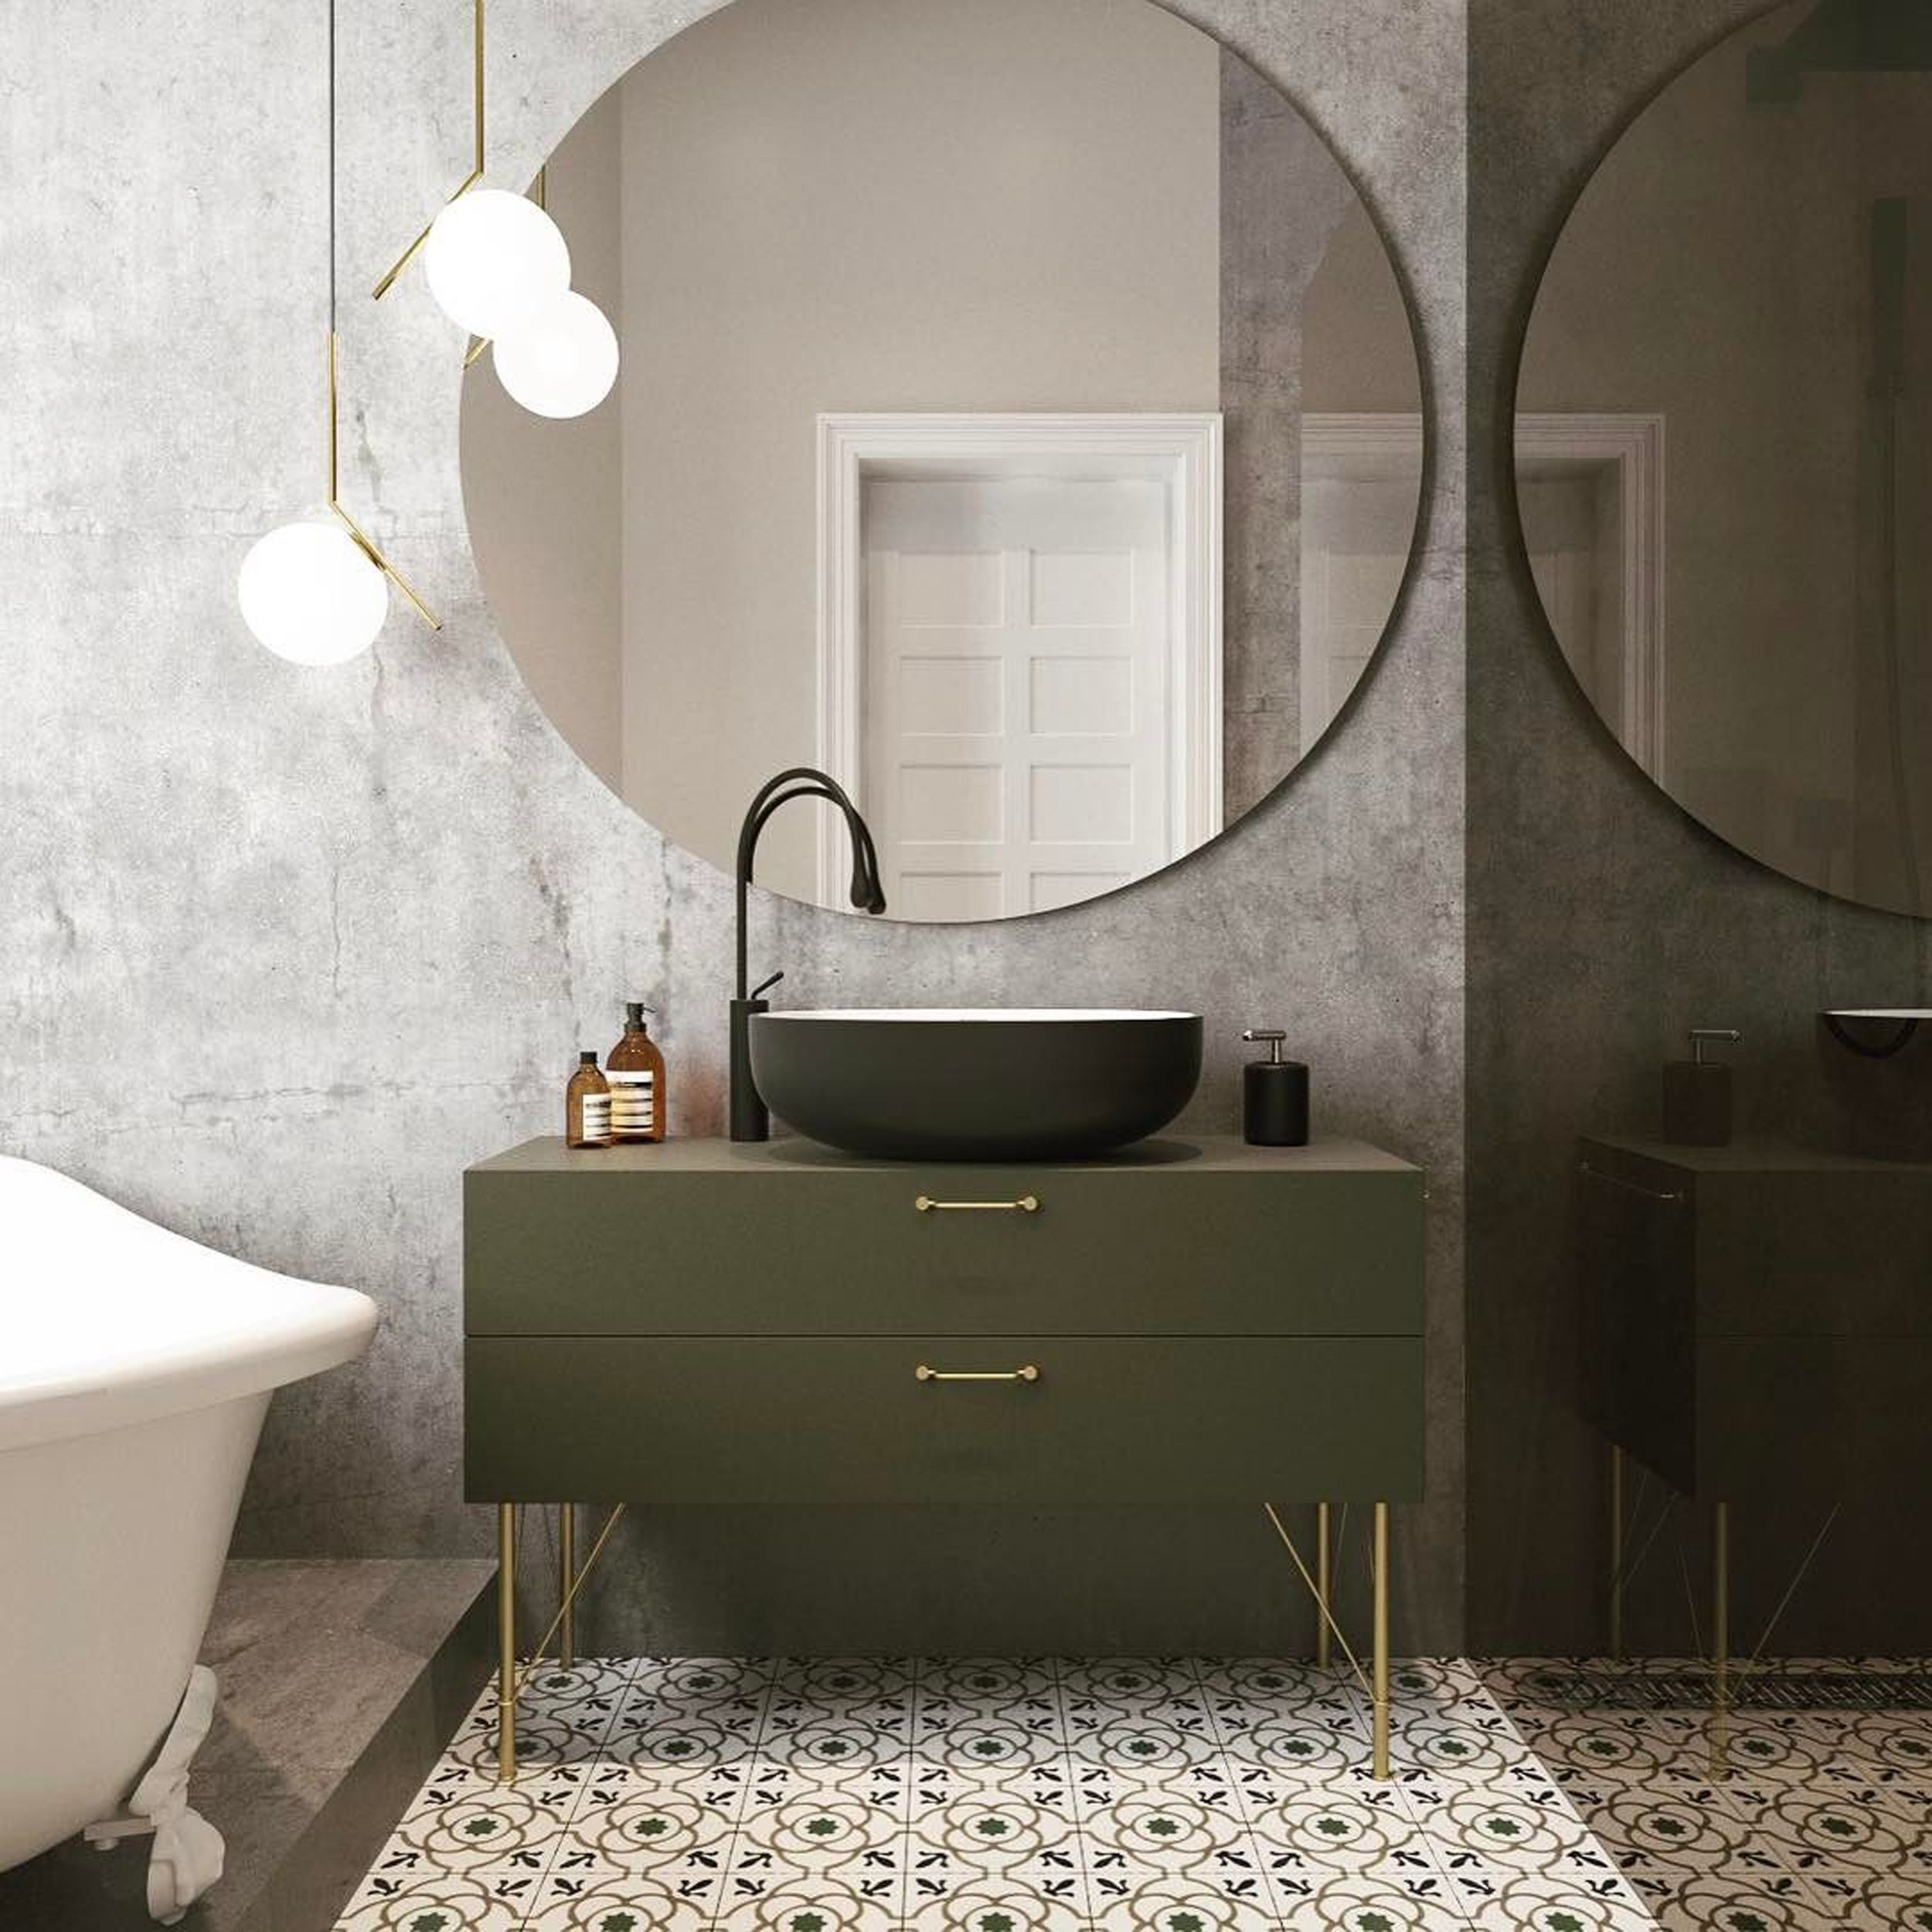 Bathrooms I Pinned For The Mountain Fixer And Why Emily Henderson Bathroom Inspiration Modern Modern Bathroom Design Bathroom Interior Design